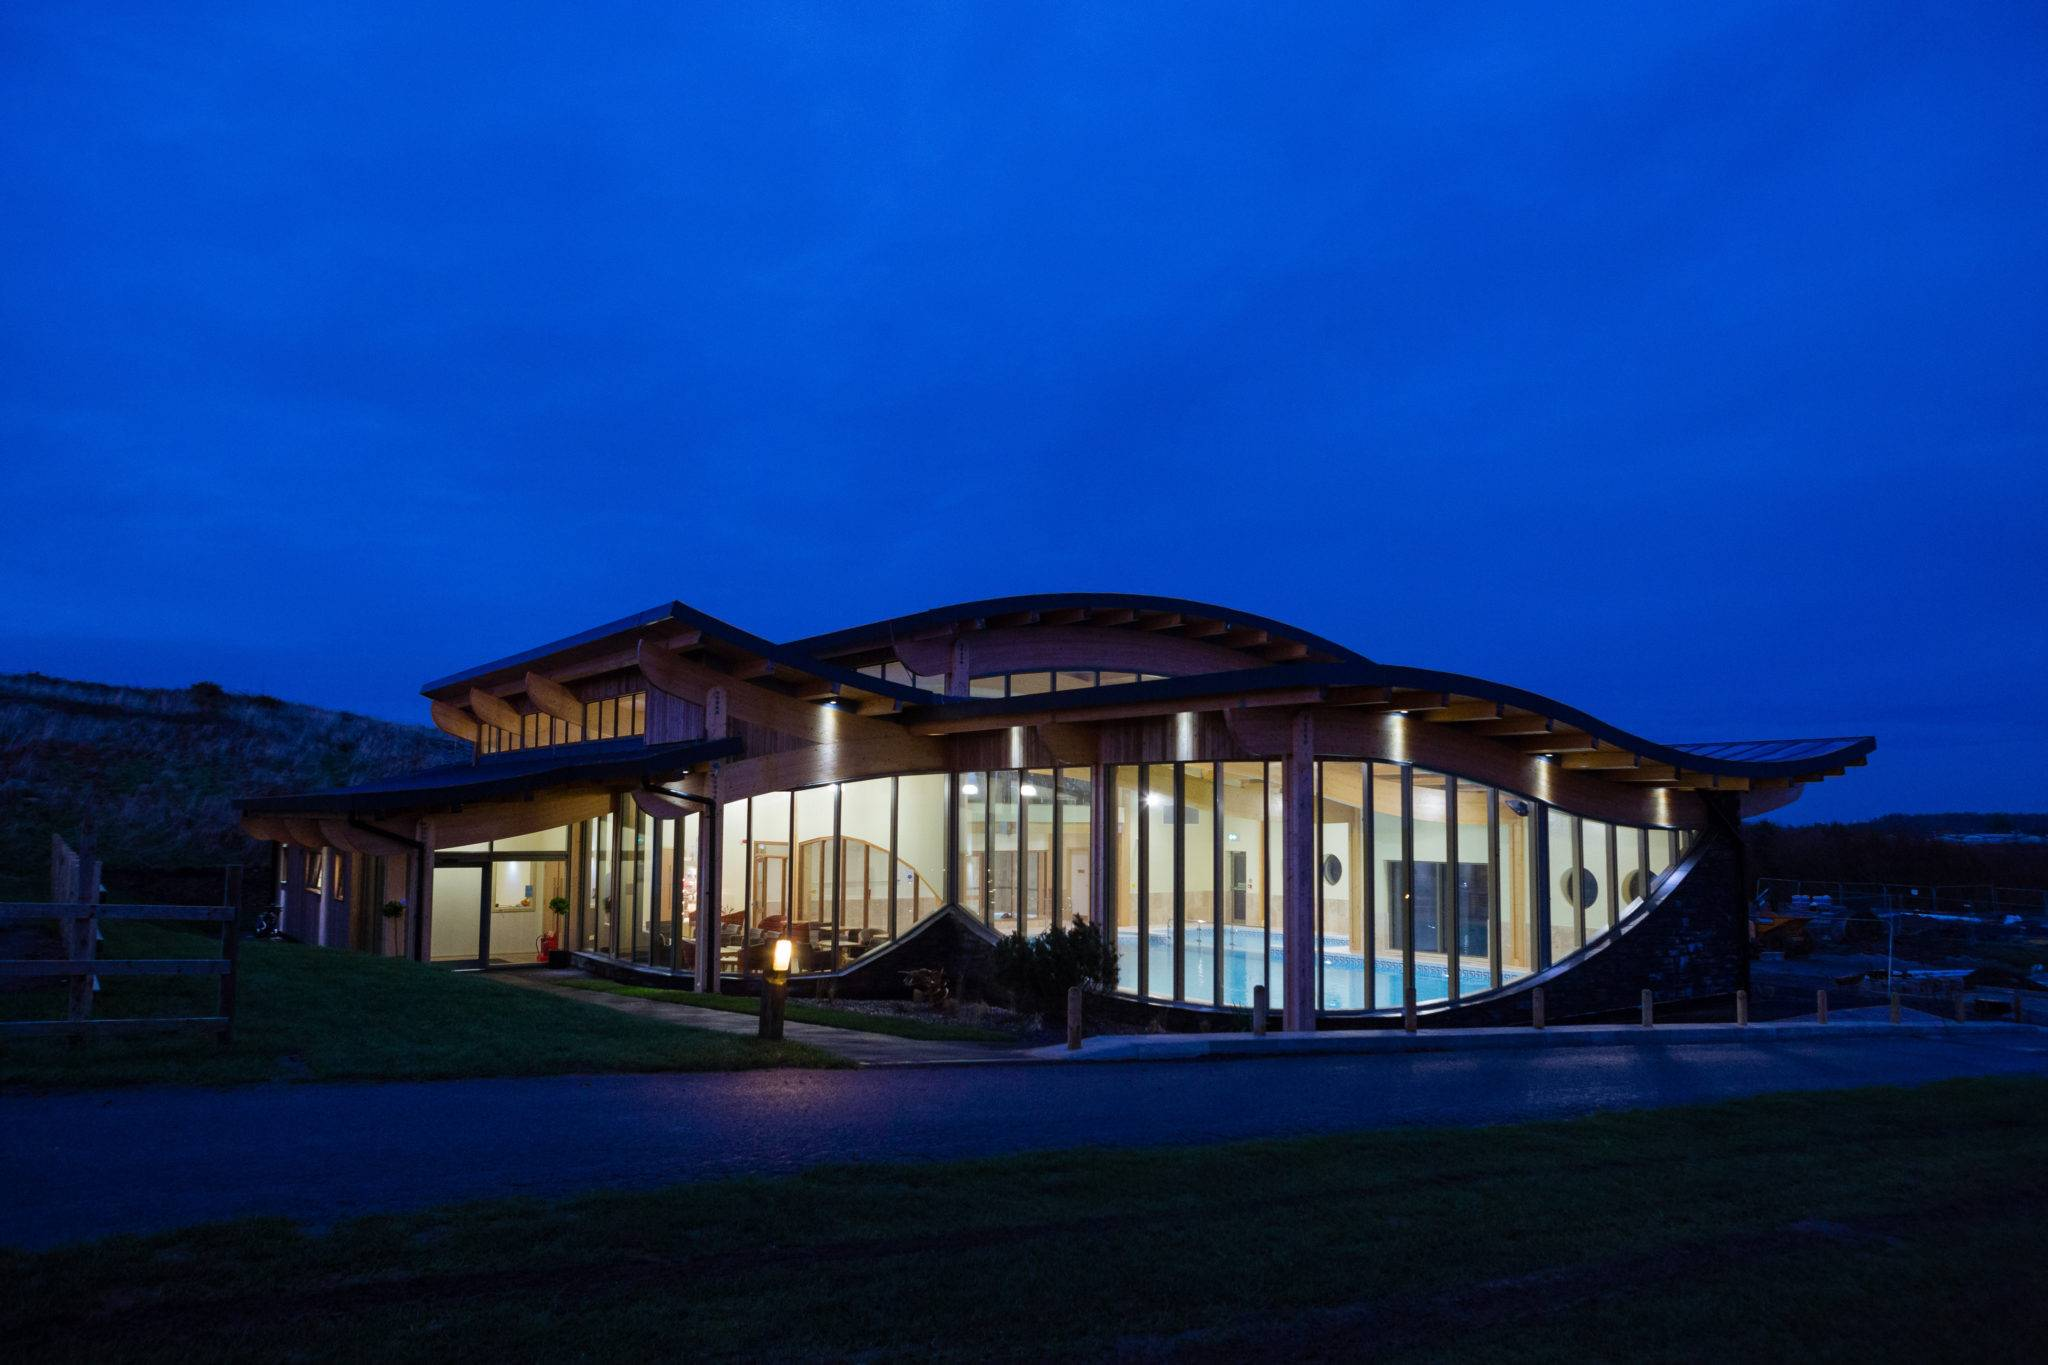 http://silverbay.co.uk/wp-content/uploads/2016/12/Silver-Bay-Spa-and-Leisure-Complex-Building-Architecture-5.jpg